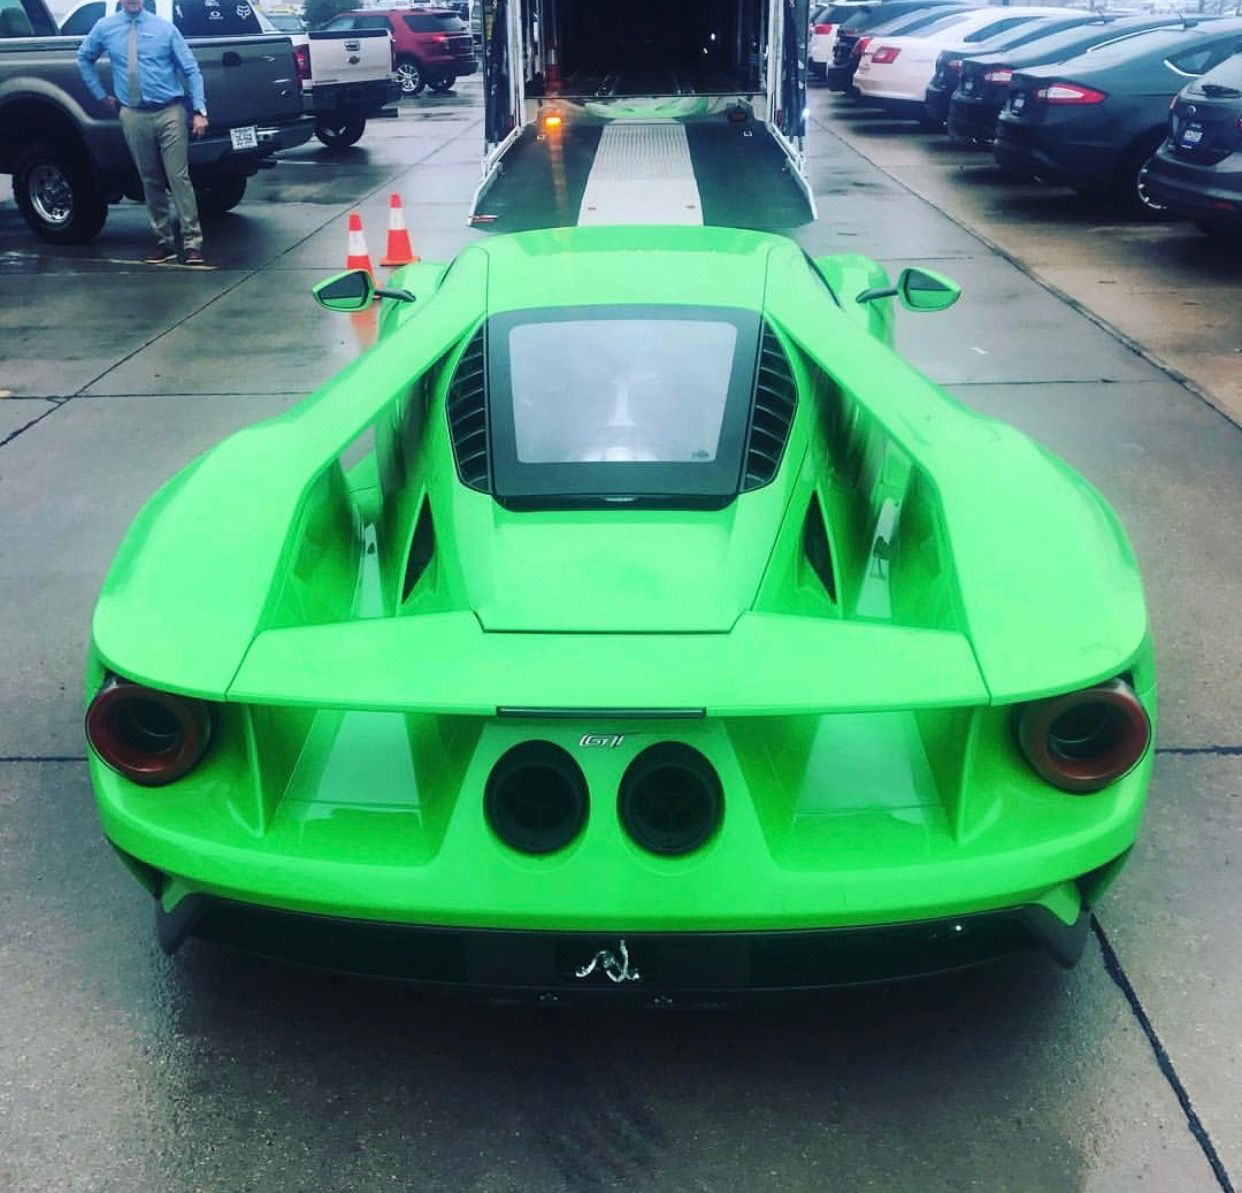 Ford Gt Painted In The Lamborghini Color Verde Mantis Photo Taken By Jpnshelbiscars On